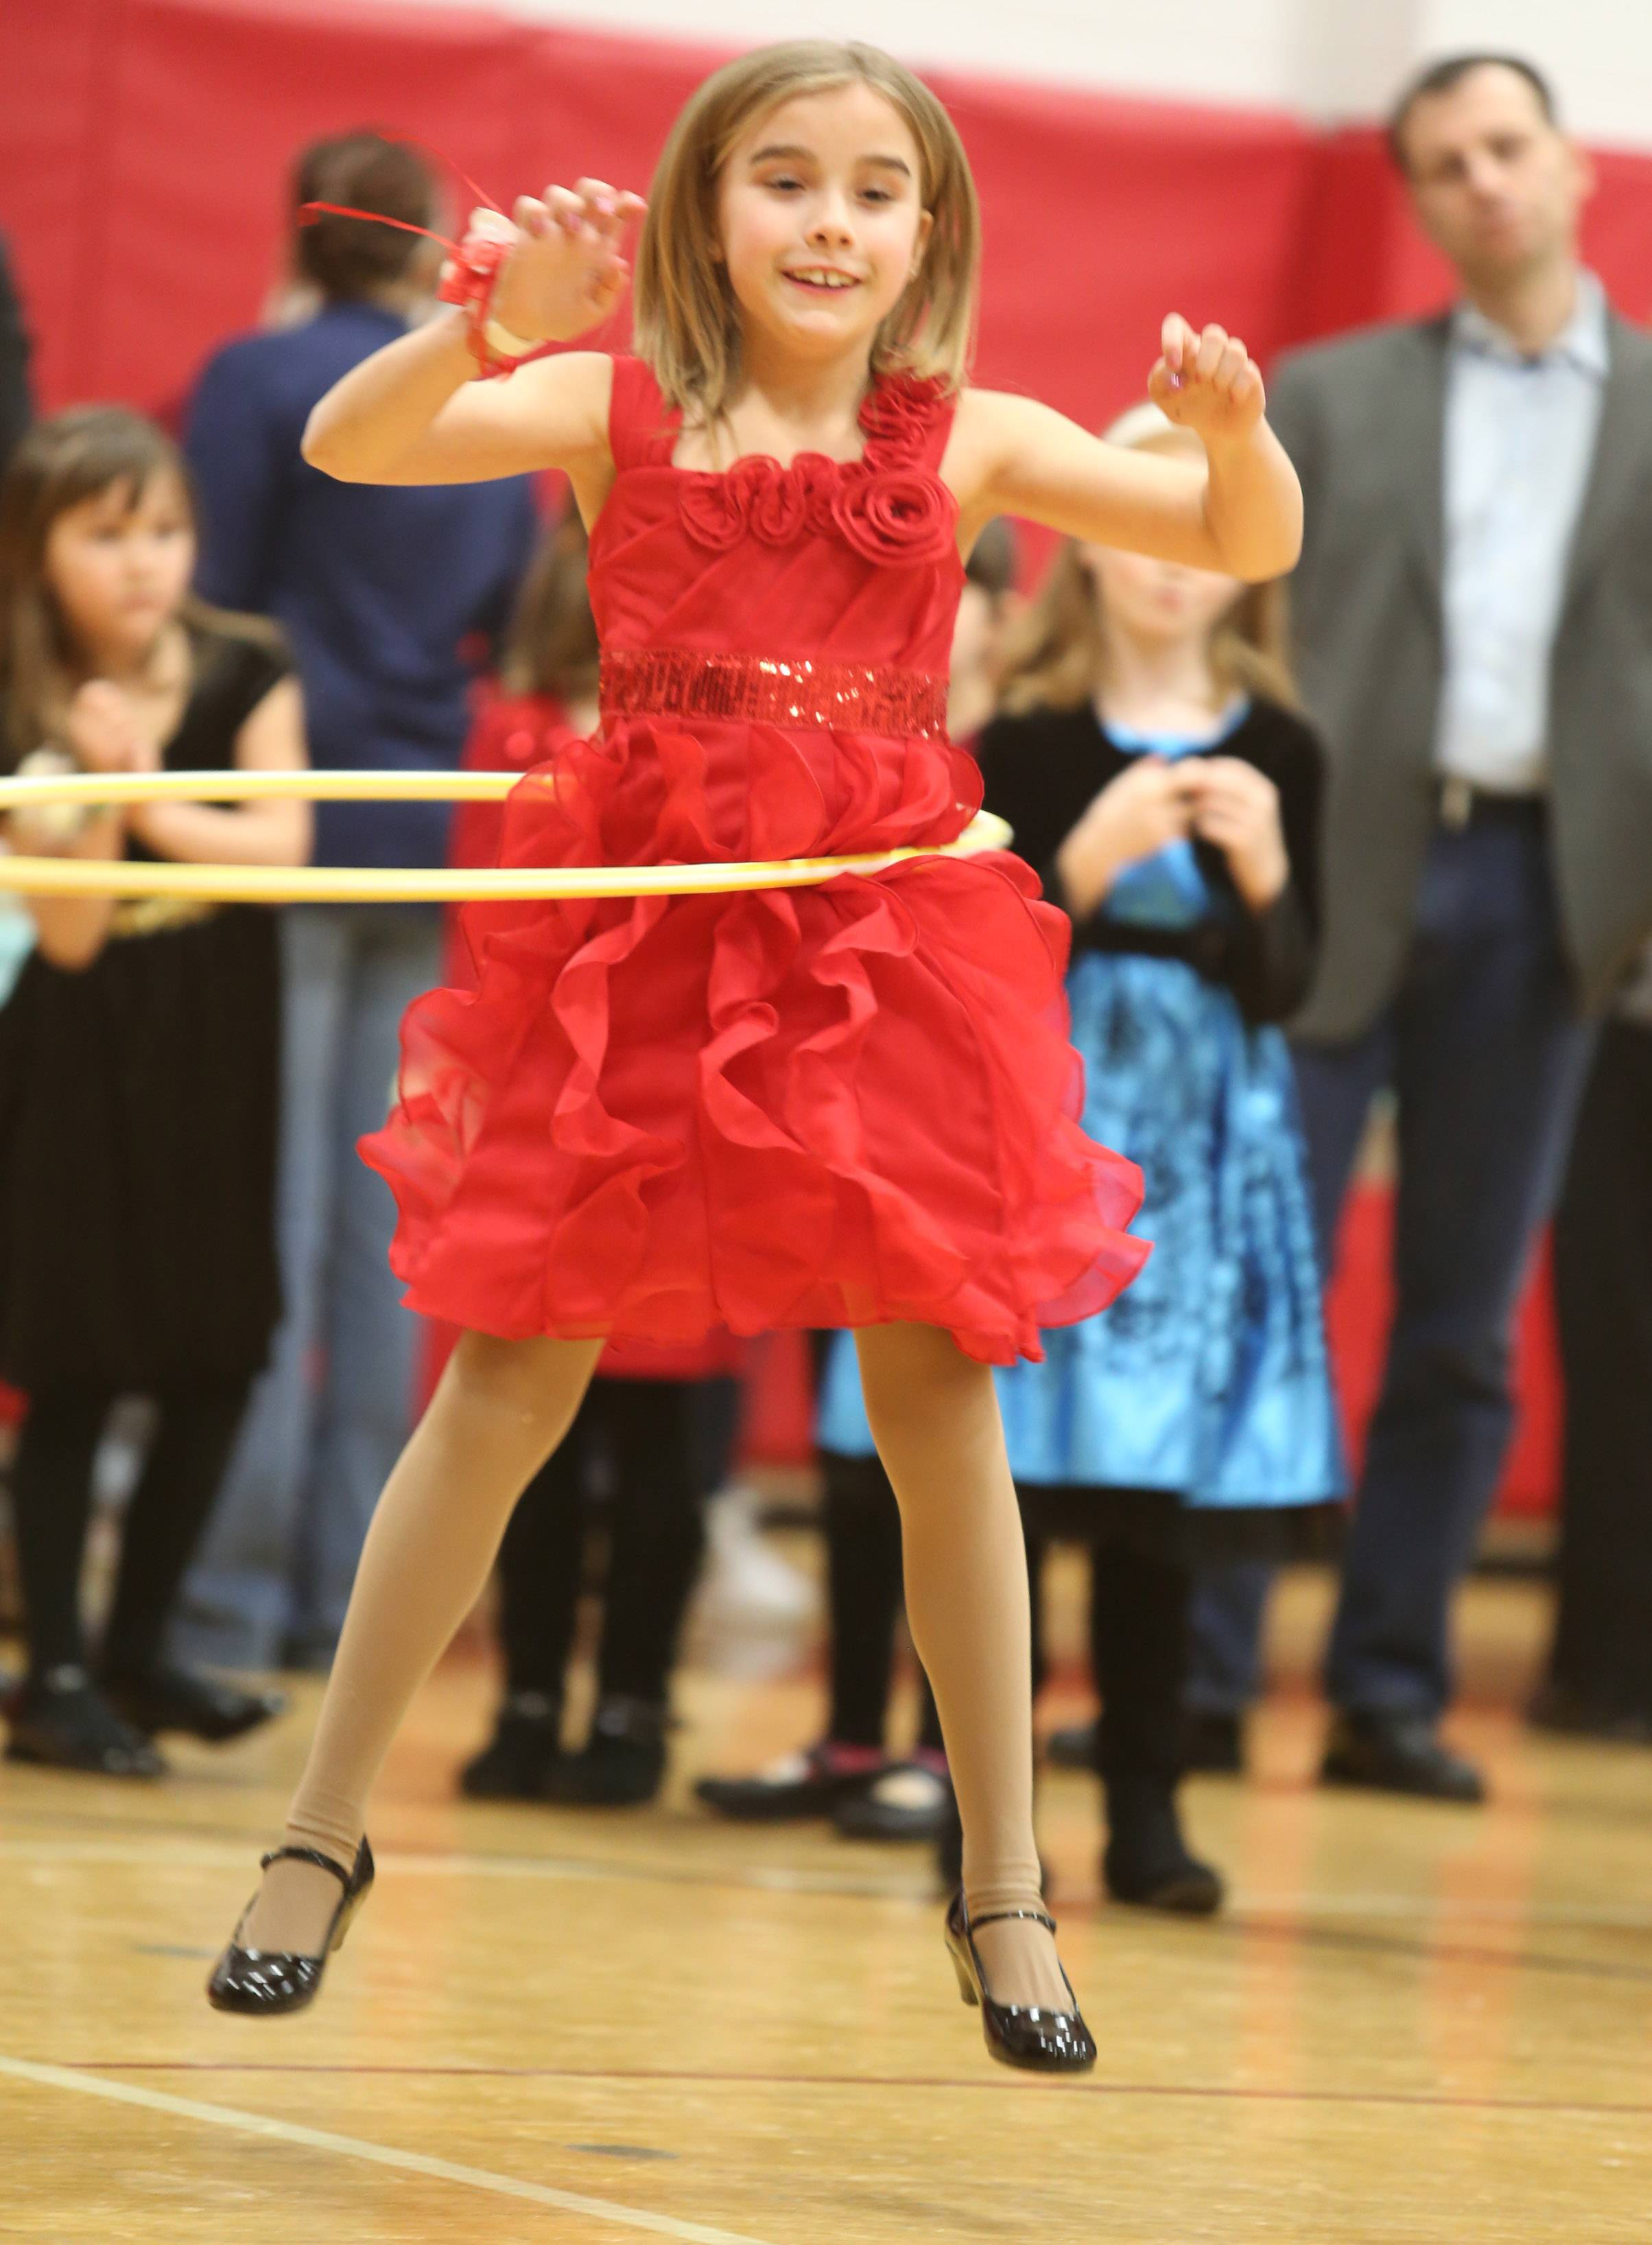 Gracie Carey, 8, of Schaumburg, competes in a hula-hoop contest at a dad and daughter dance at the Community Recreation Center on Saturday night in Schaumburg.